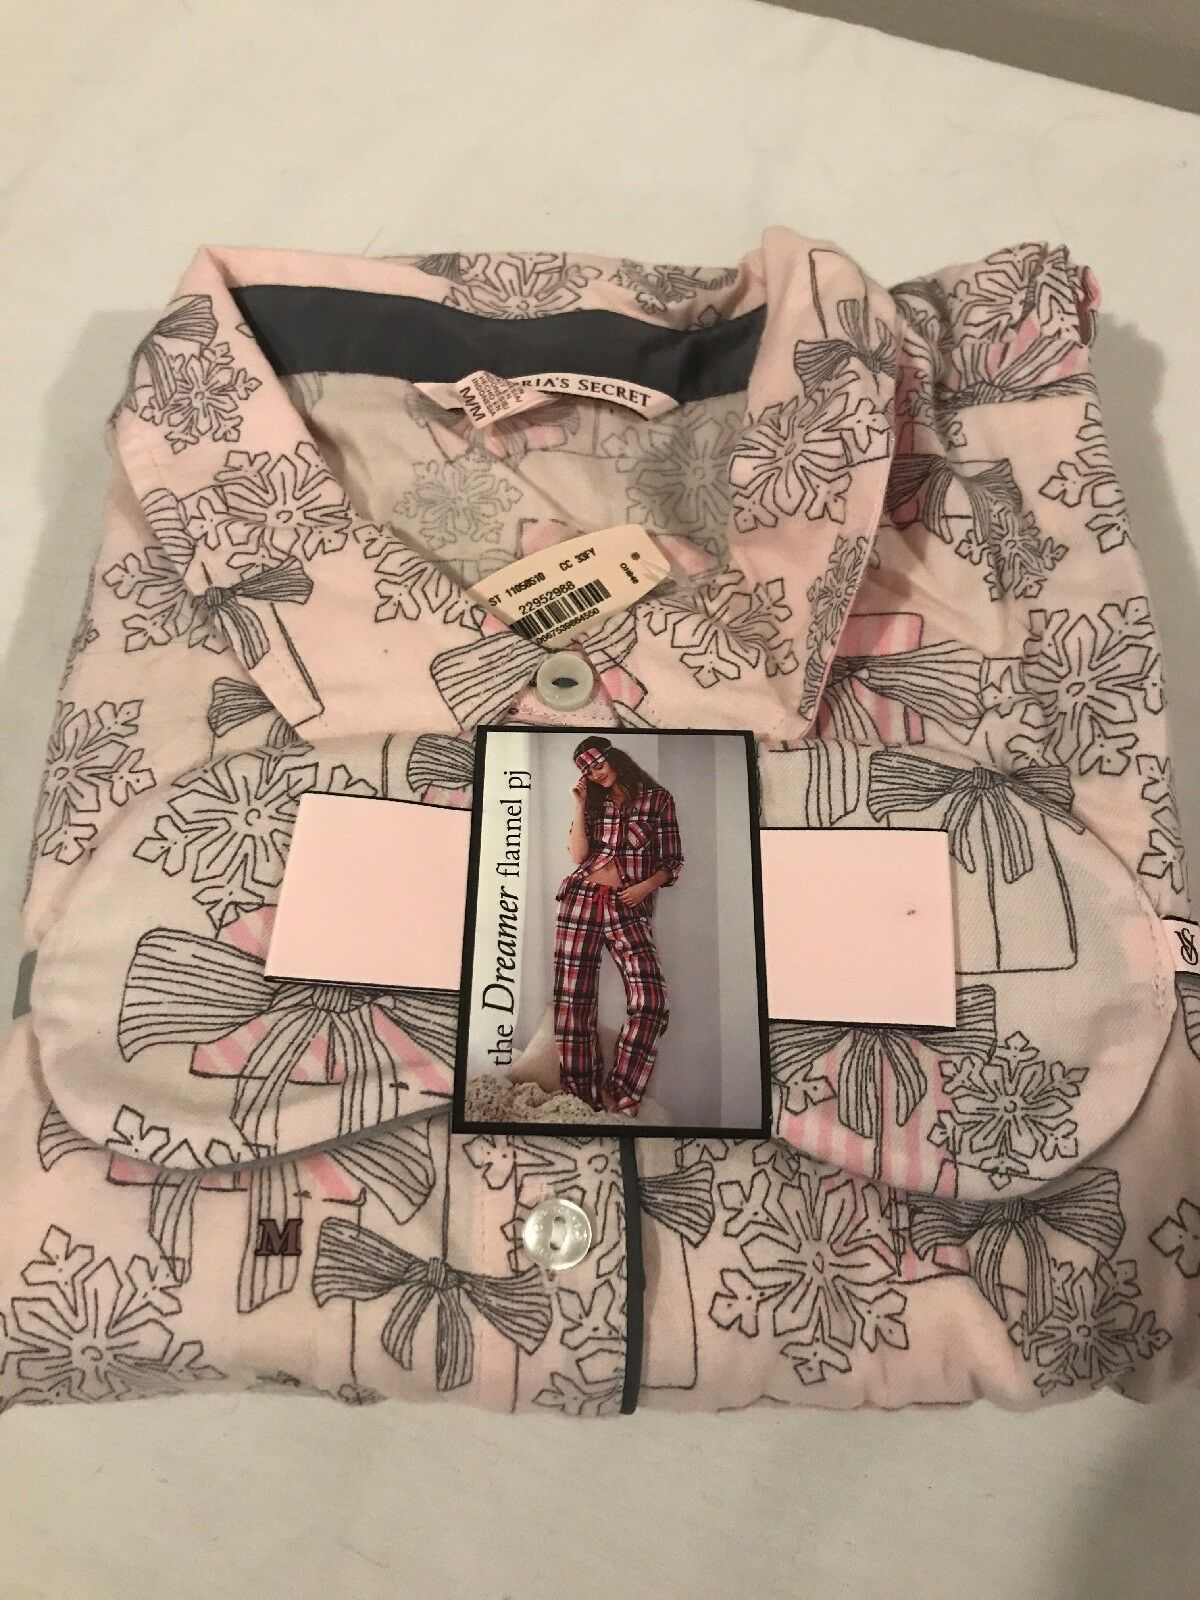 NWT Victoria's Secret Dreamer Snowflake Presents Flannel PJ Shirt Pants M